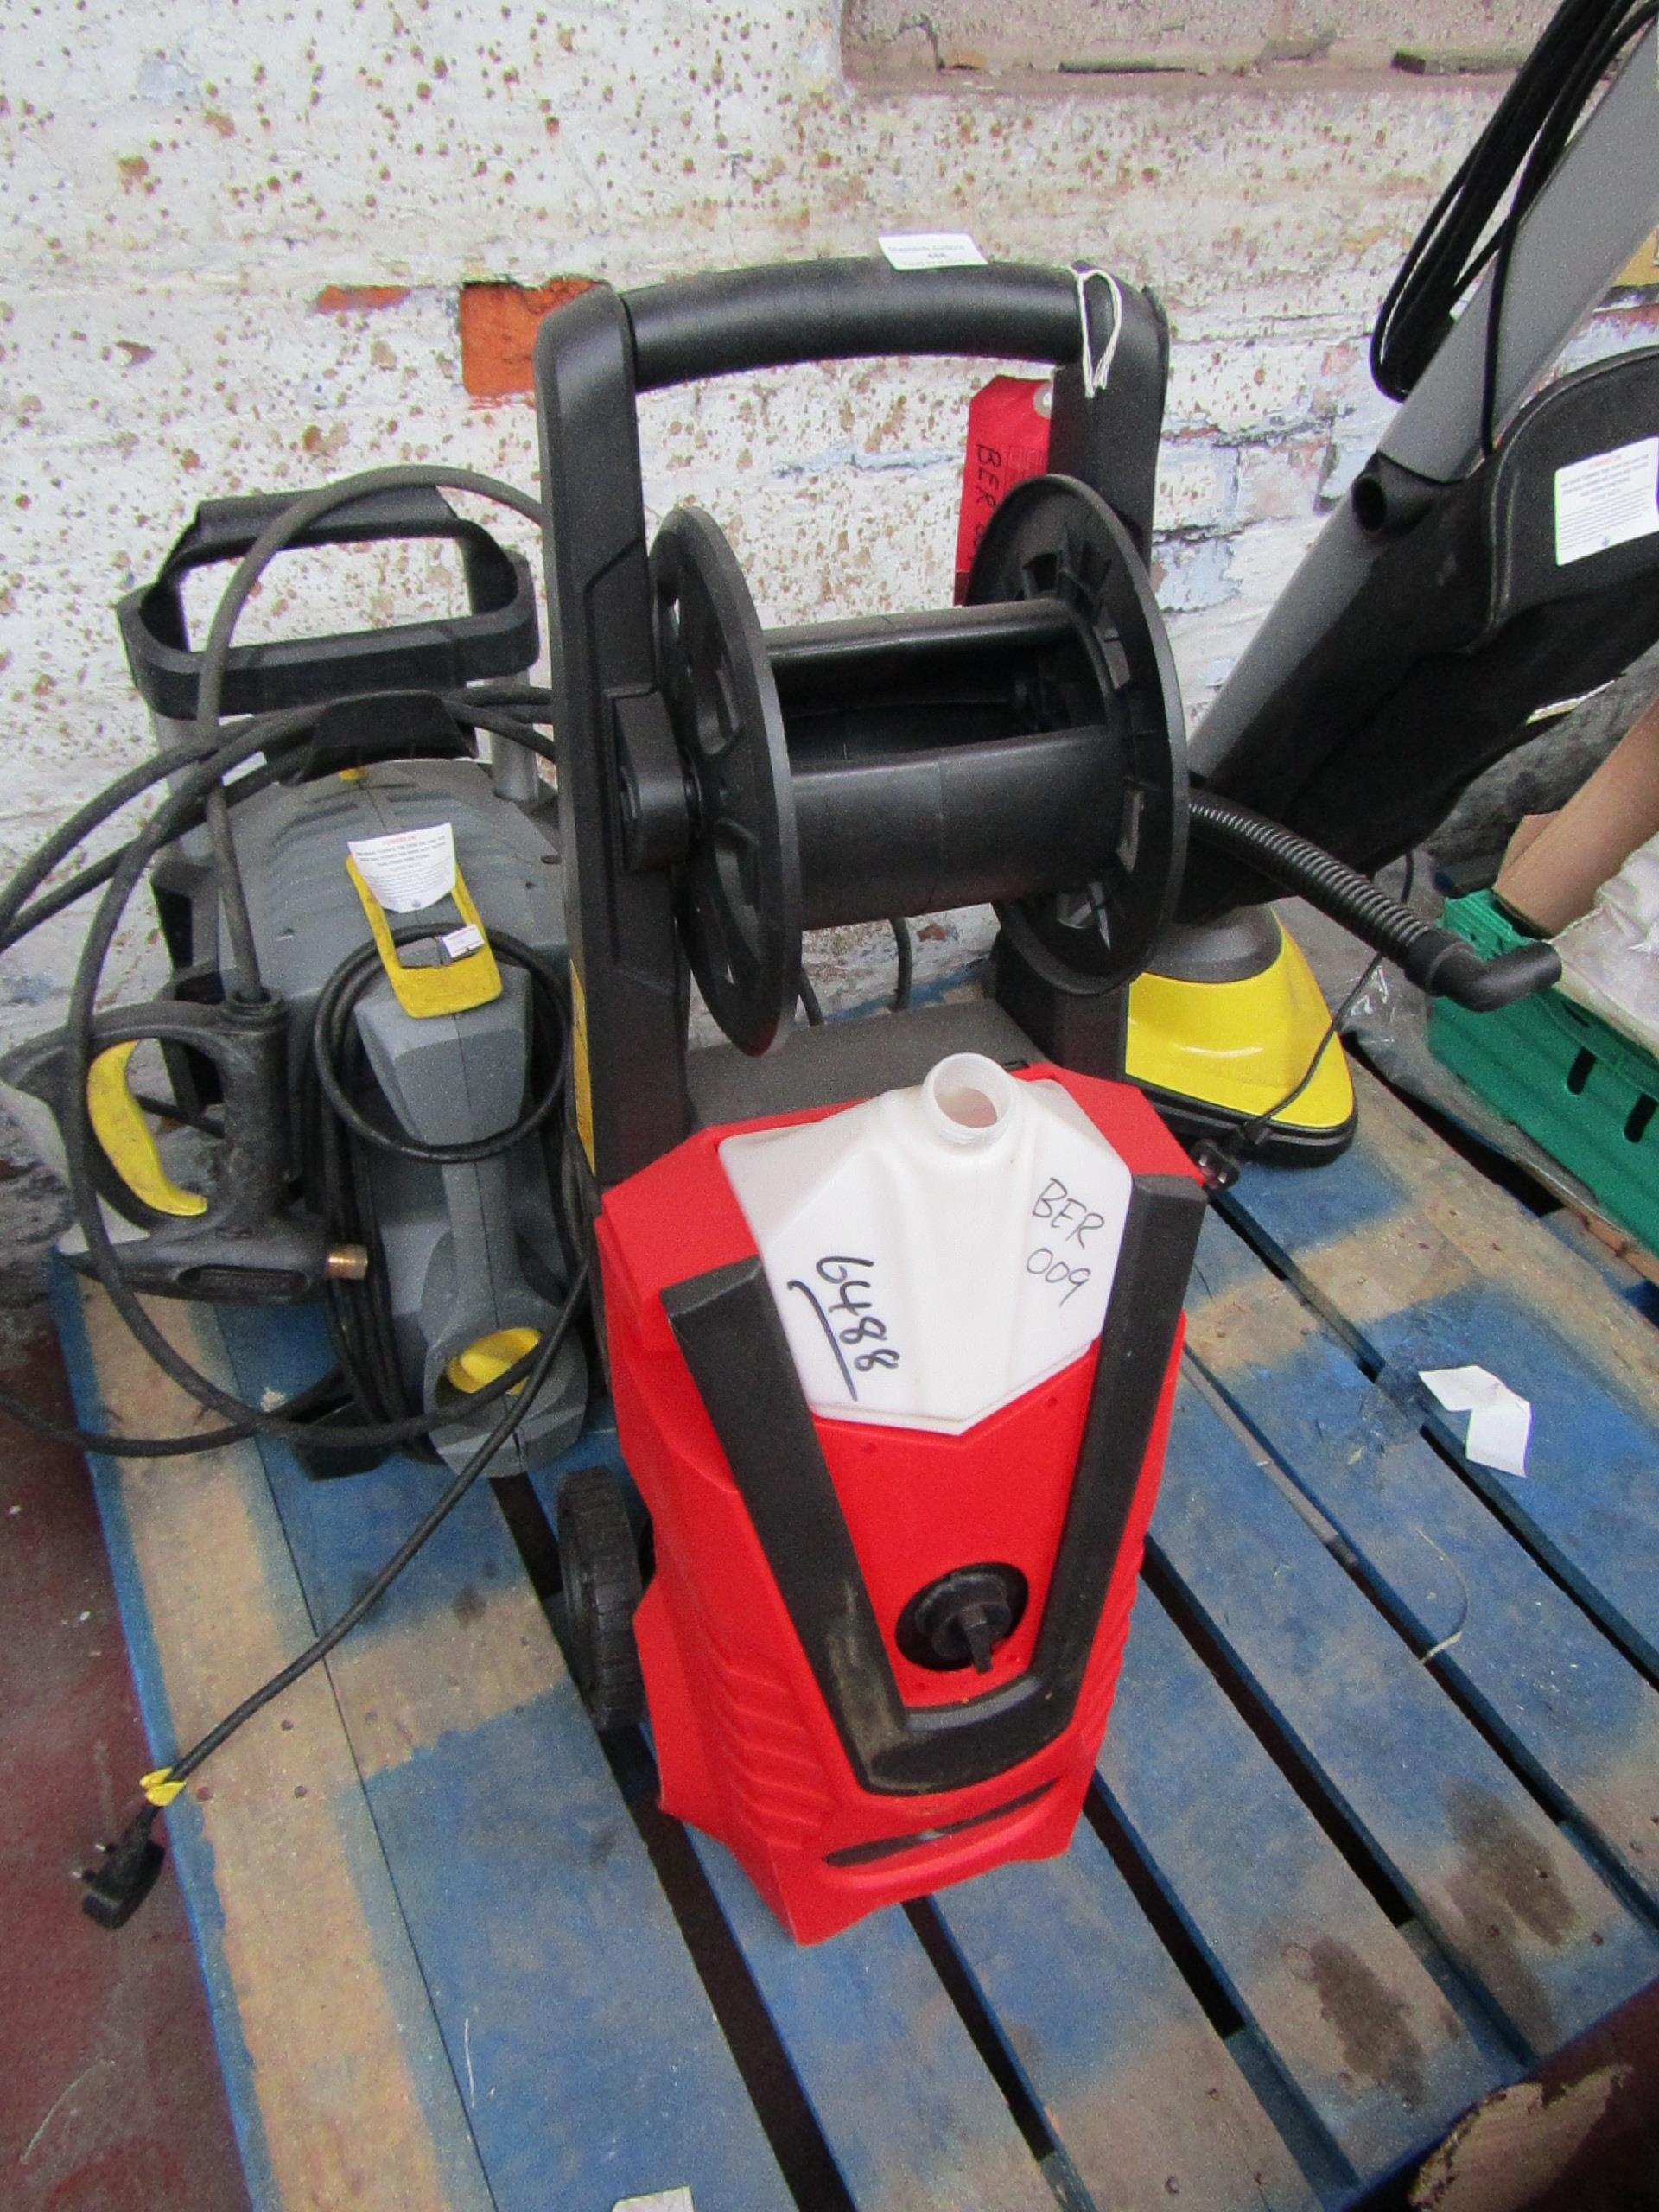 Lot 458 - Clarke Jet9500 pressure washer This lot is a Machine Mart product which is raw and completely